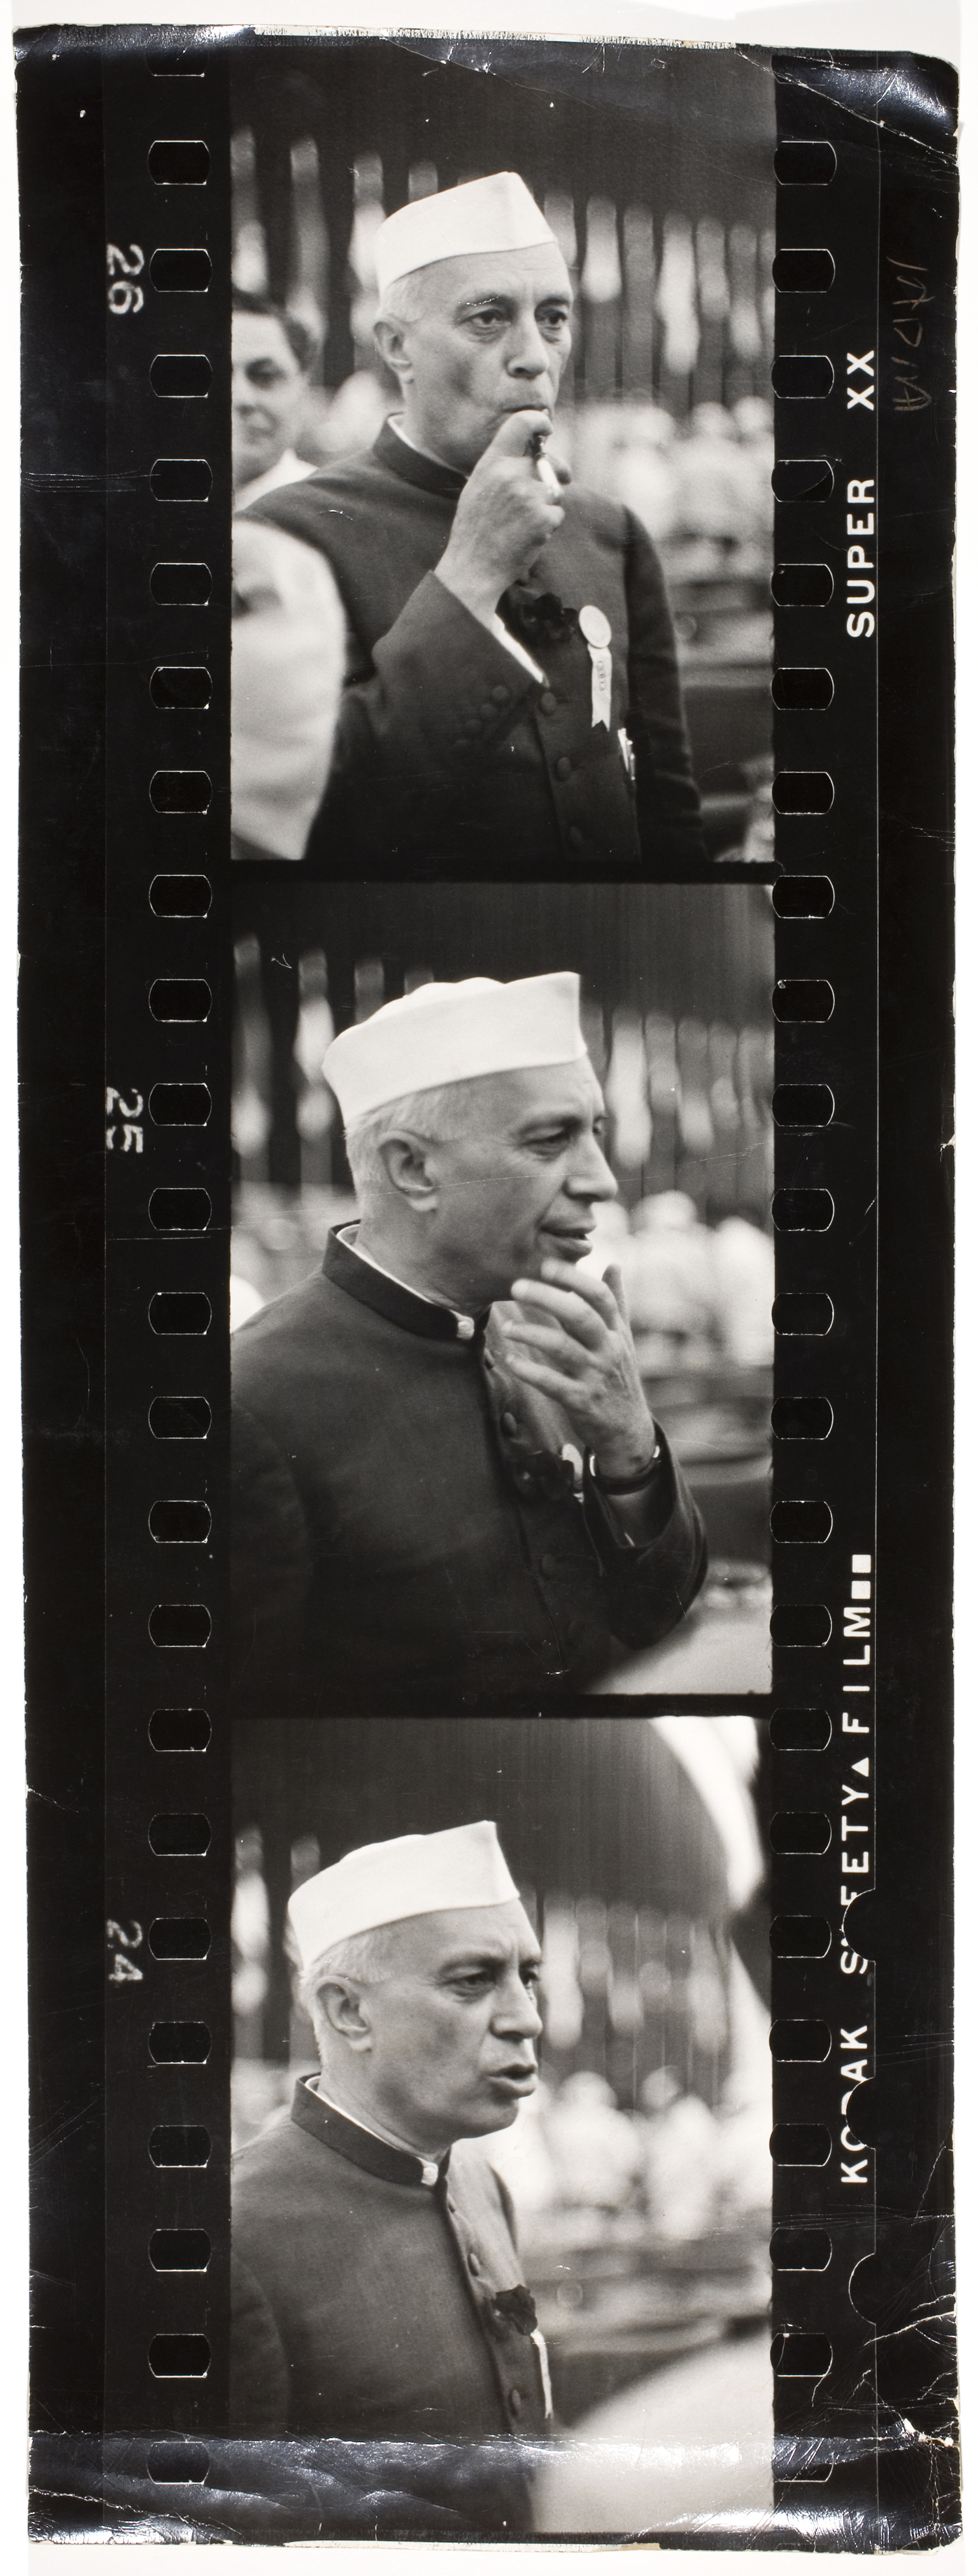 tryst with destiny by jawaharlal nehru 'tryst with destiny,' is a speech that was delivered by jawaharlal nehru, india's first prime minister, at the parliament house in new delhi on august 15 th 1947, the day of india's independence from the british rule this speech was addressed to the entire nation as it was played on the radio for it to be heard by the indian crowd.